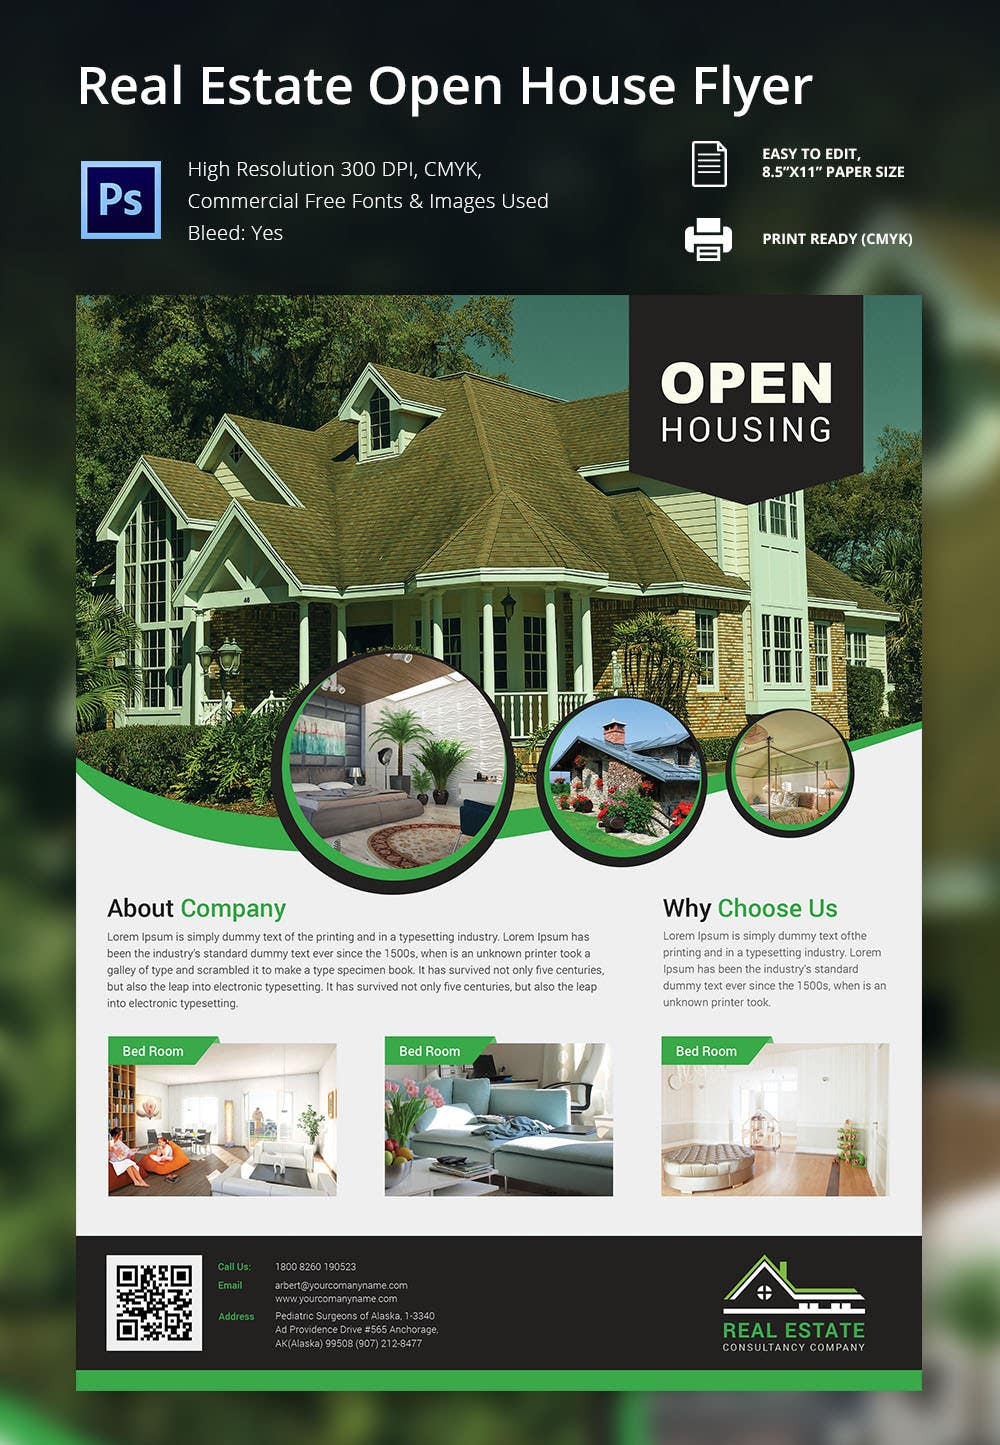 open house flyers samples radiovkmtk - Free Open House Flyer Template